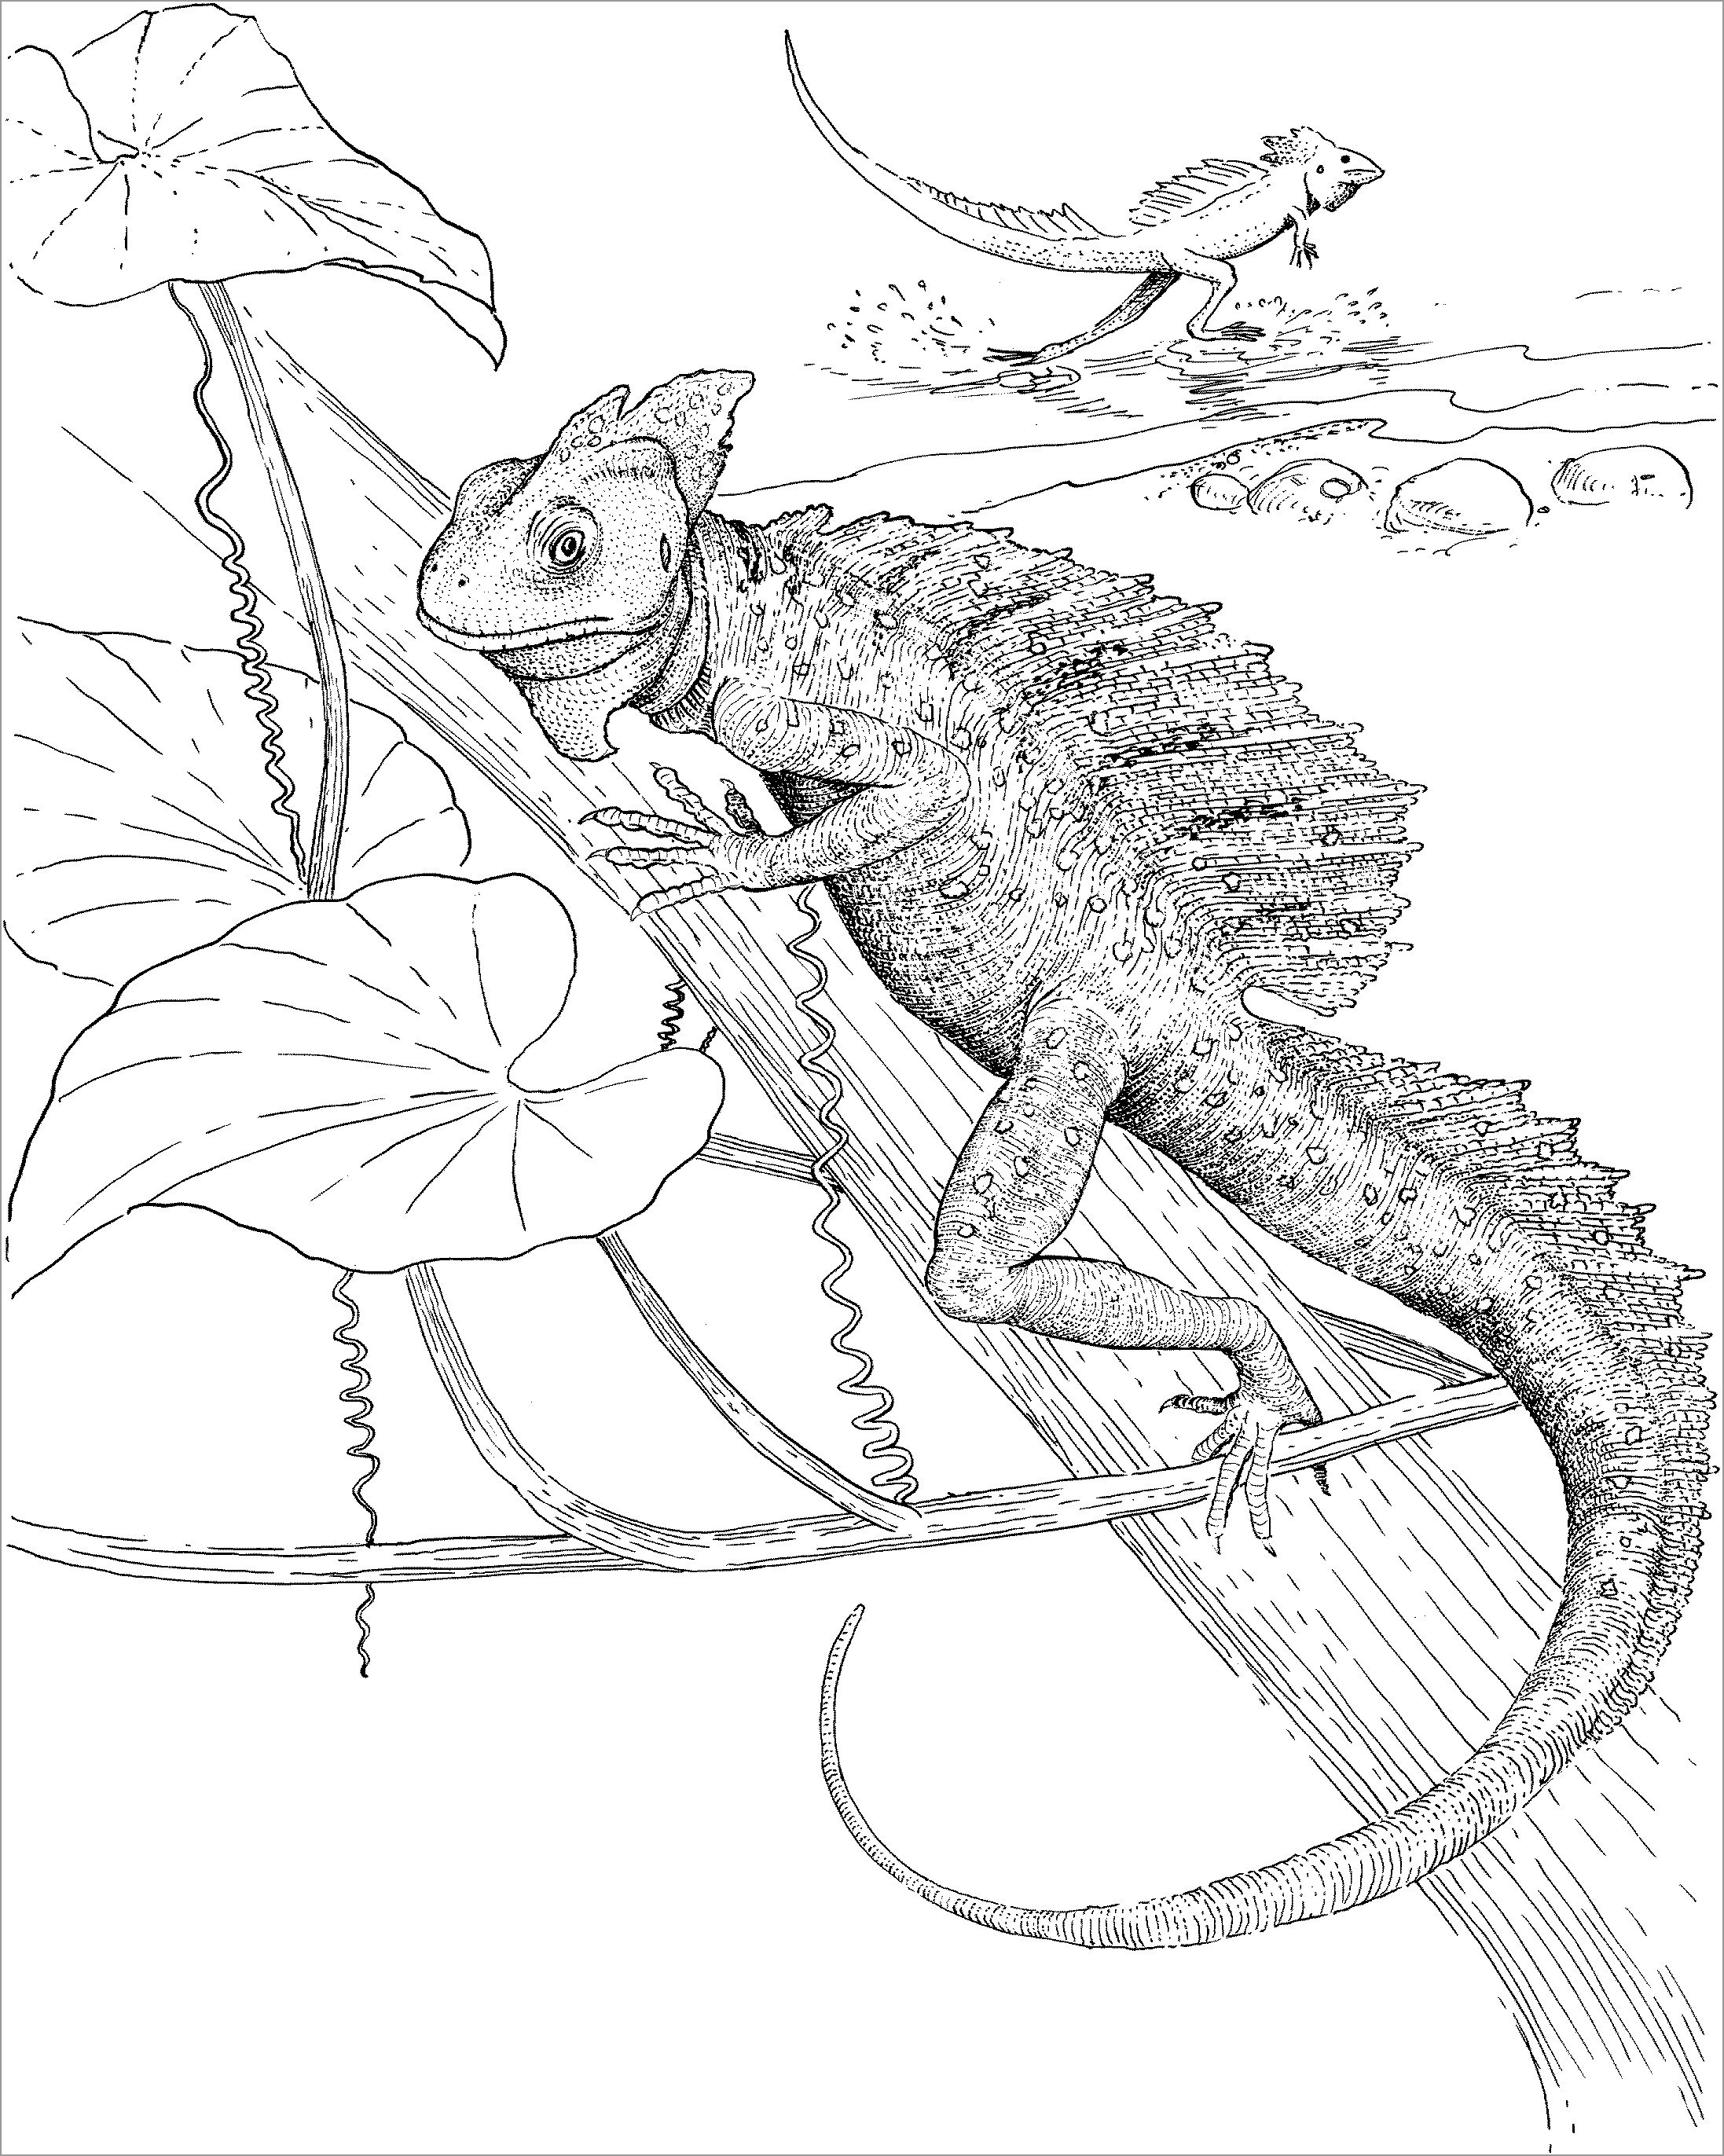 lizard for coloring lizard drawing for kids at getdrawings free download for coloring lizard